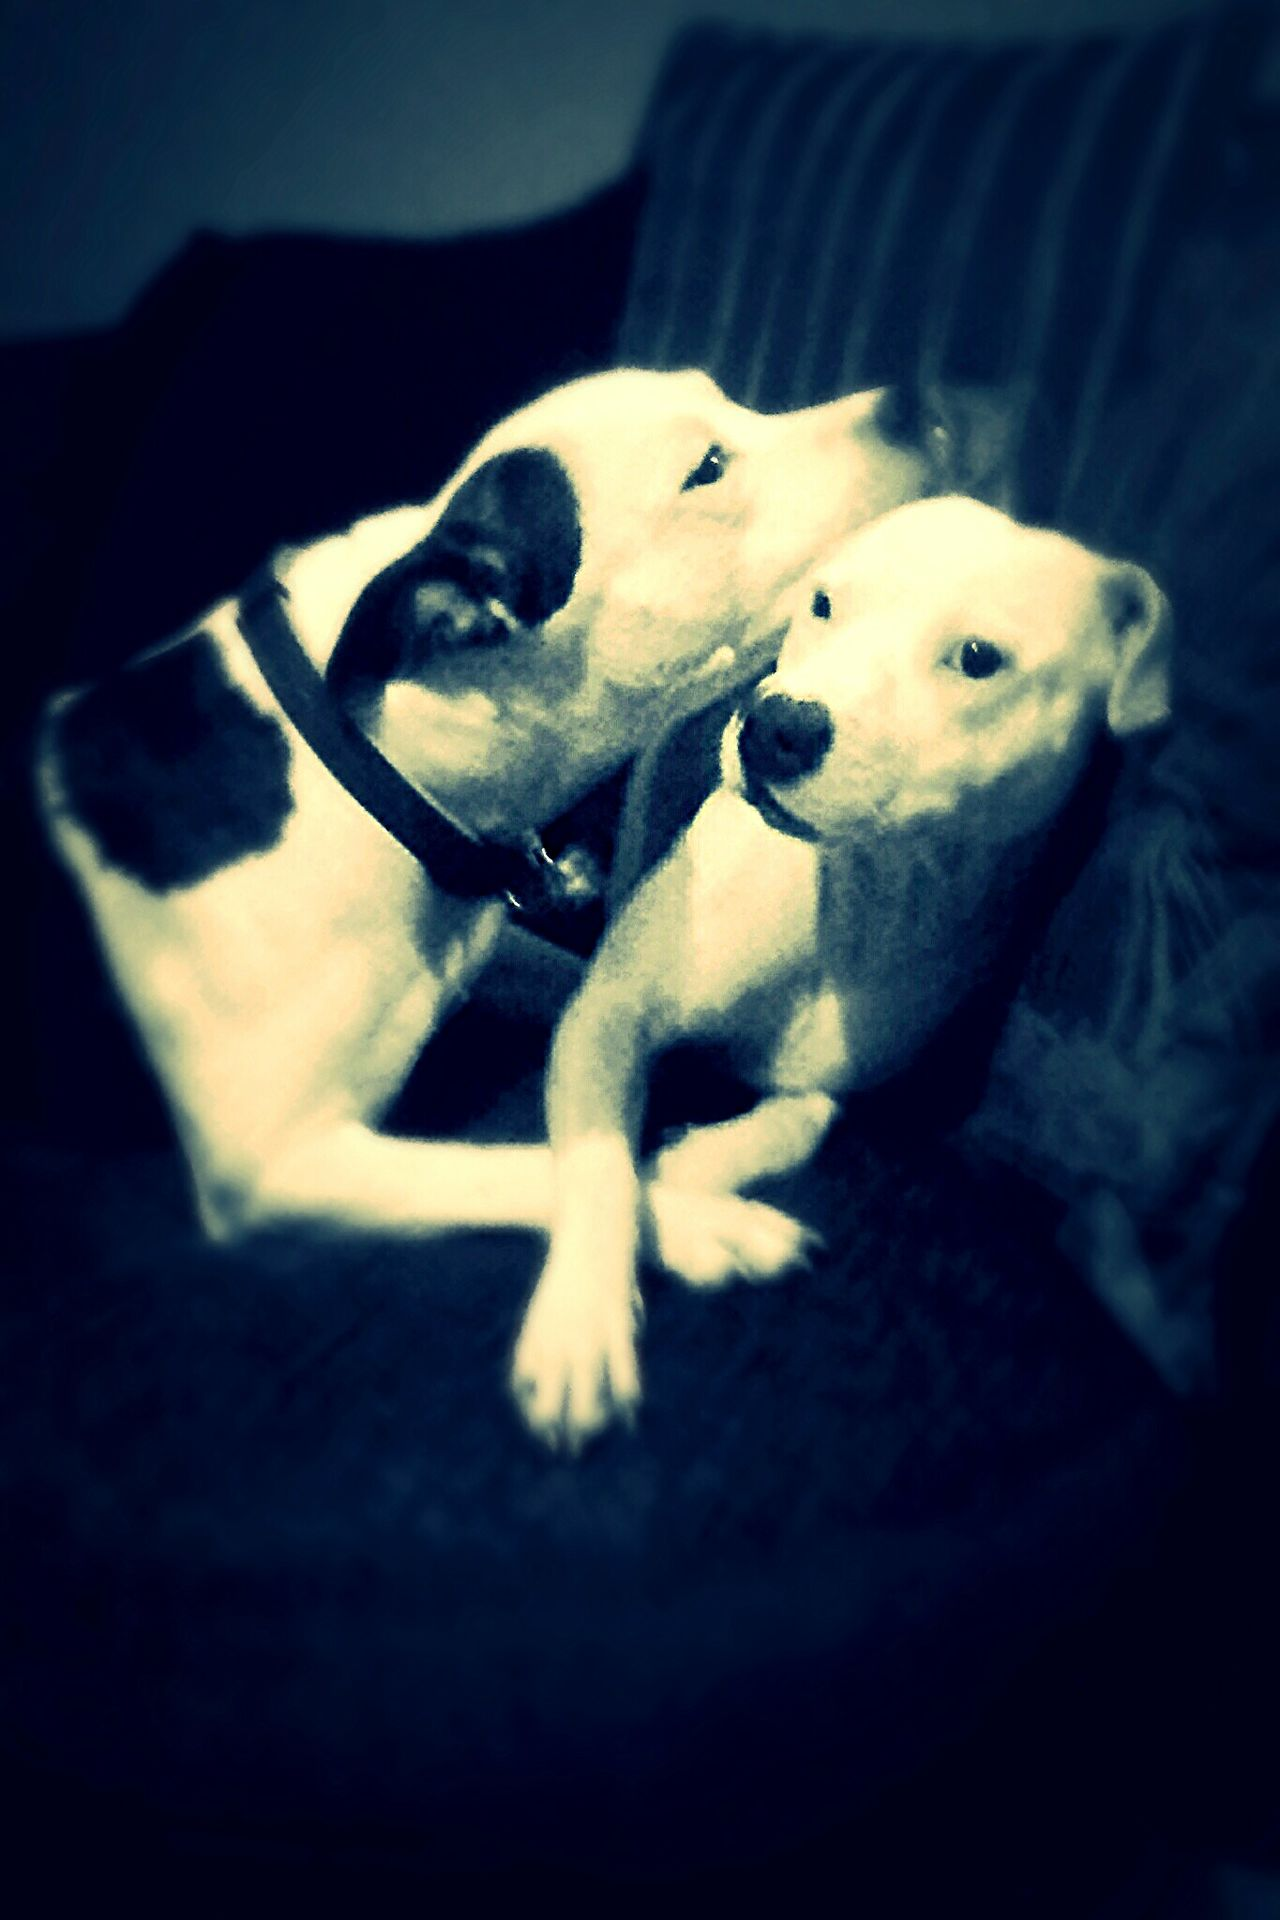 Father & Son Daddy And Son Staffy Staffylove Staffysofinstagram Staffyuk Staffyoftheday Staffygram Staffylovers Staffordshire Bull Terrier Dog Pets Domestic Animals Animal Themes One Animal Close-up Selective Focus Animal Head  Mammal Focus On Foreground No People Zoology Loyalty